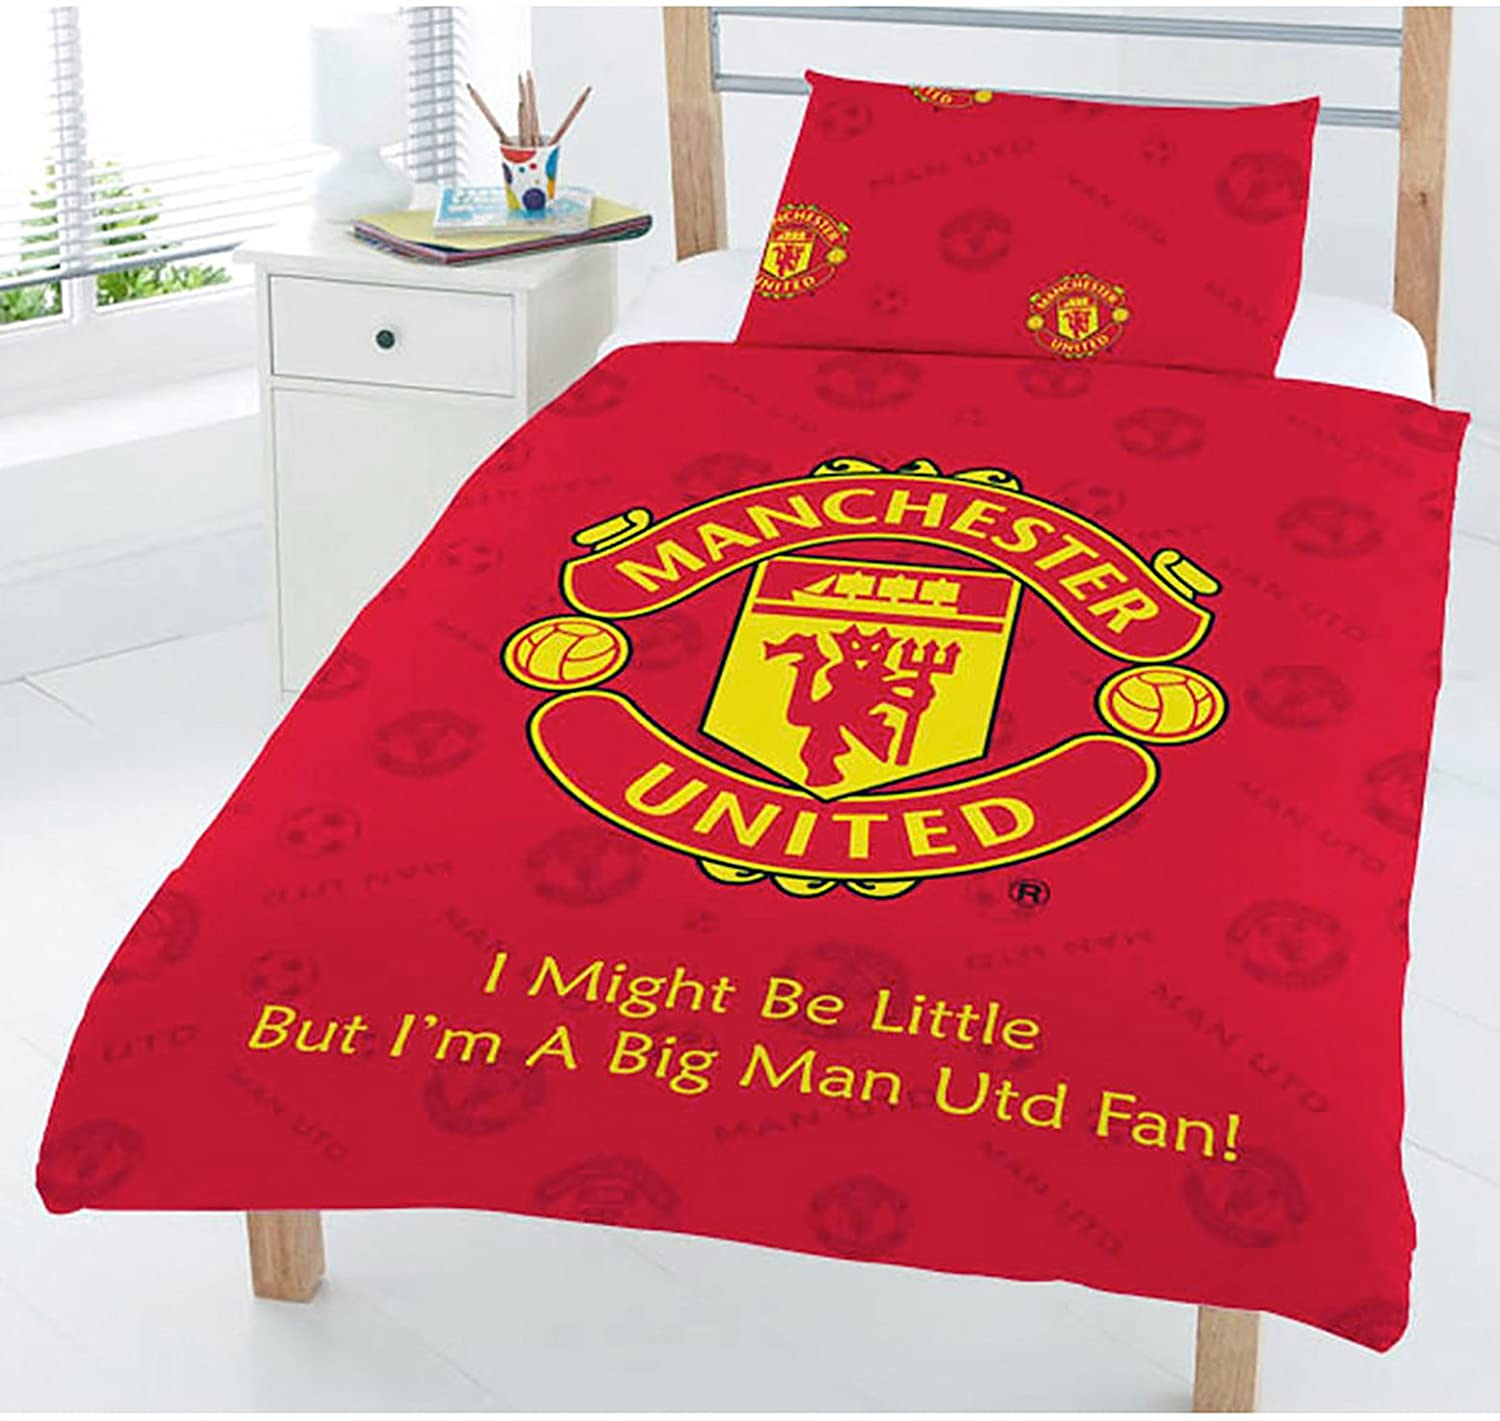 Manchester united red cot bed quilt cover and 1 pillowcase brand new